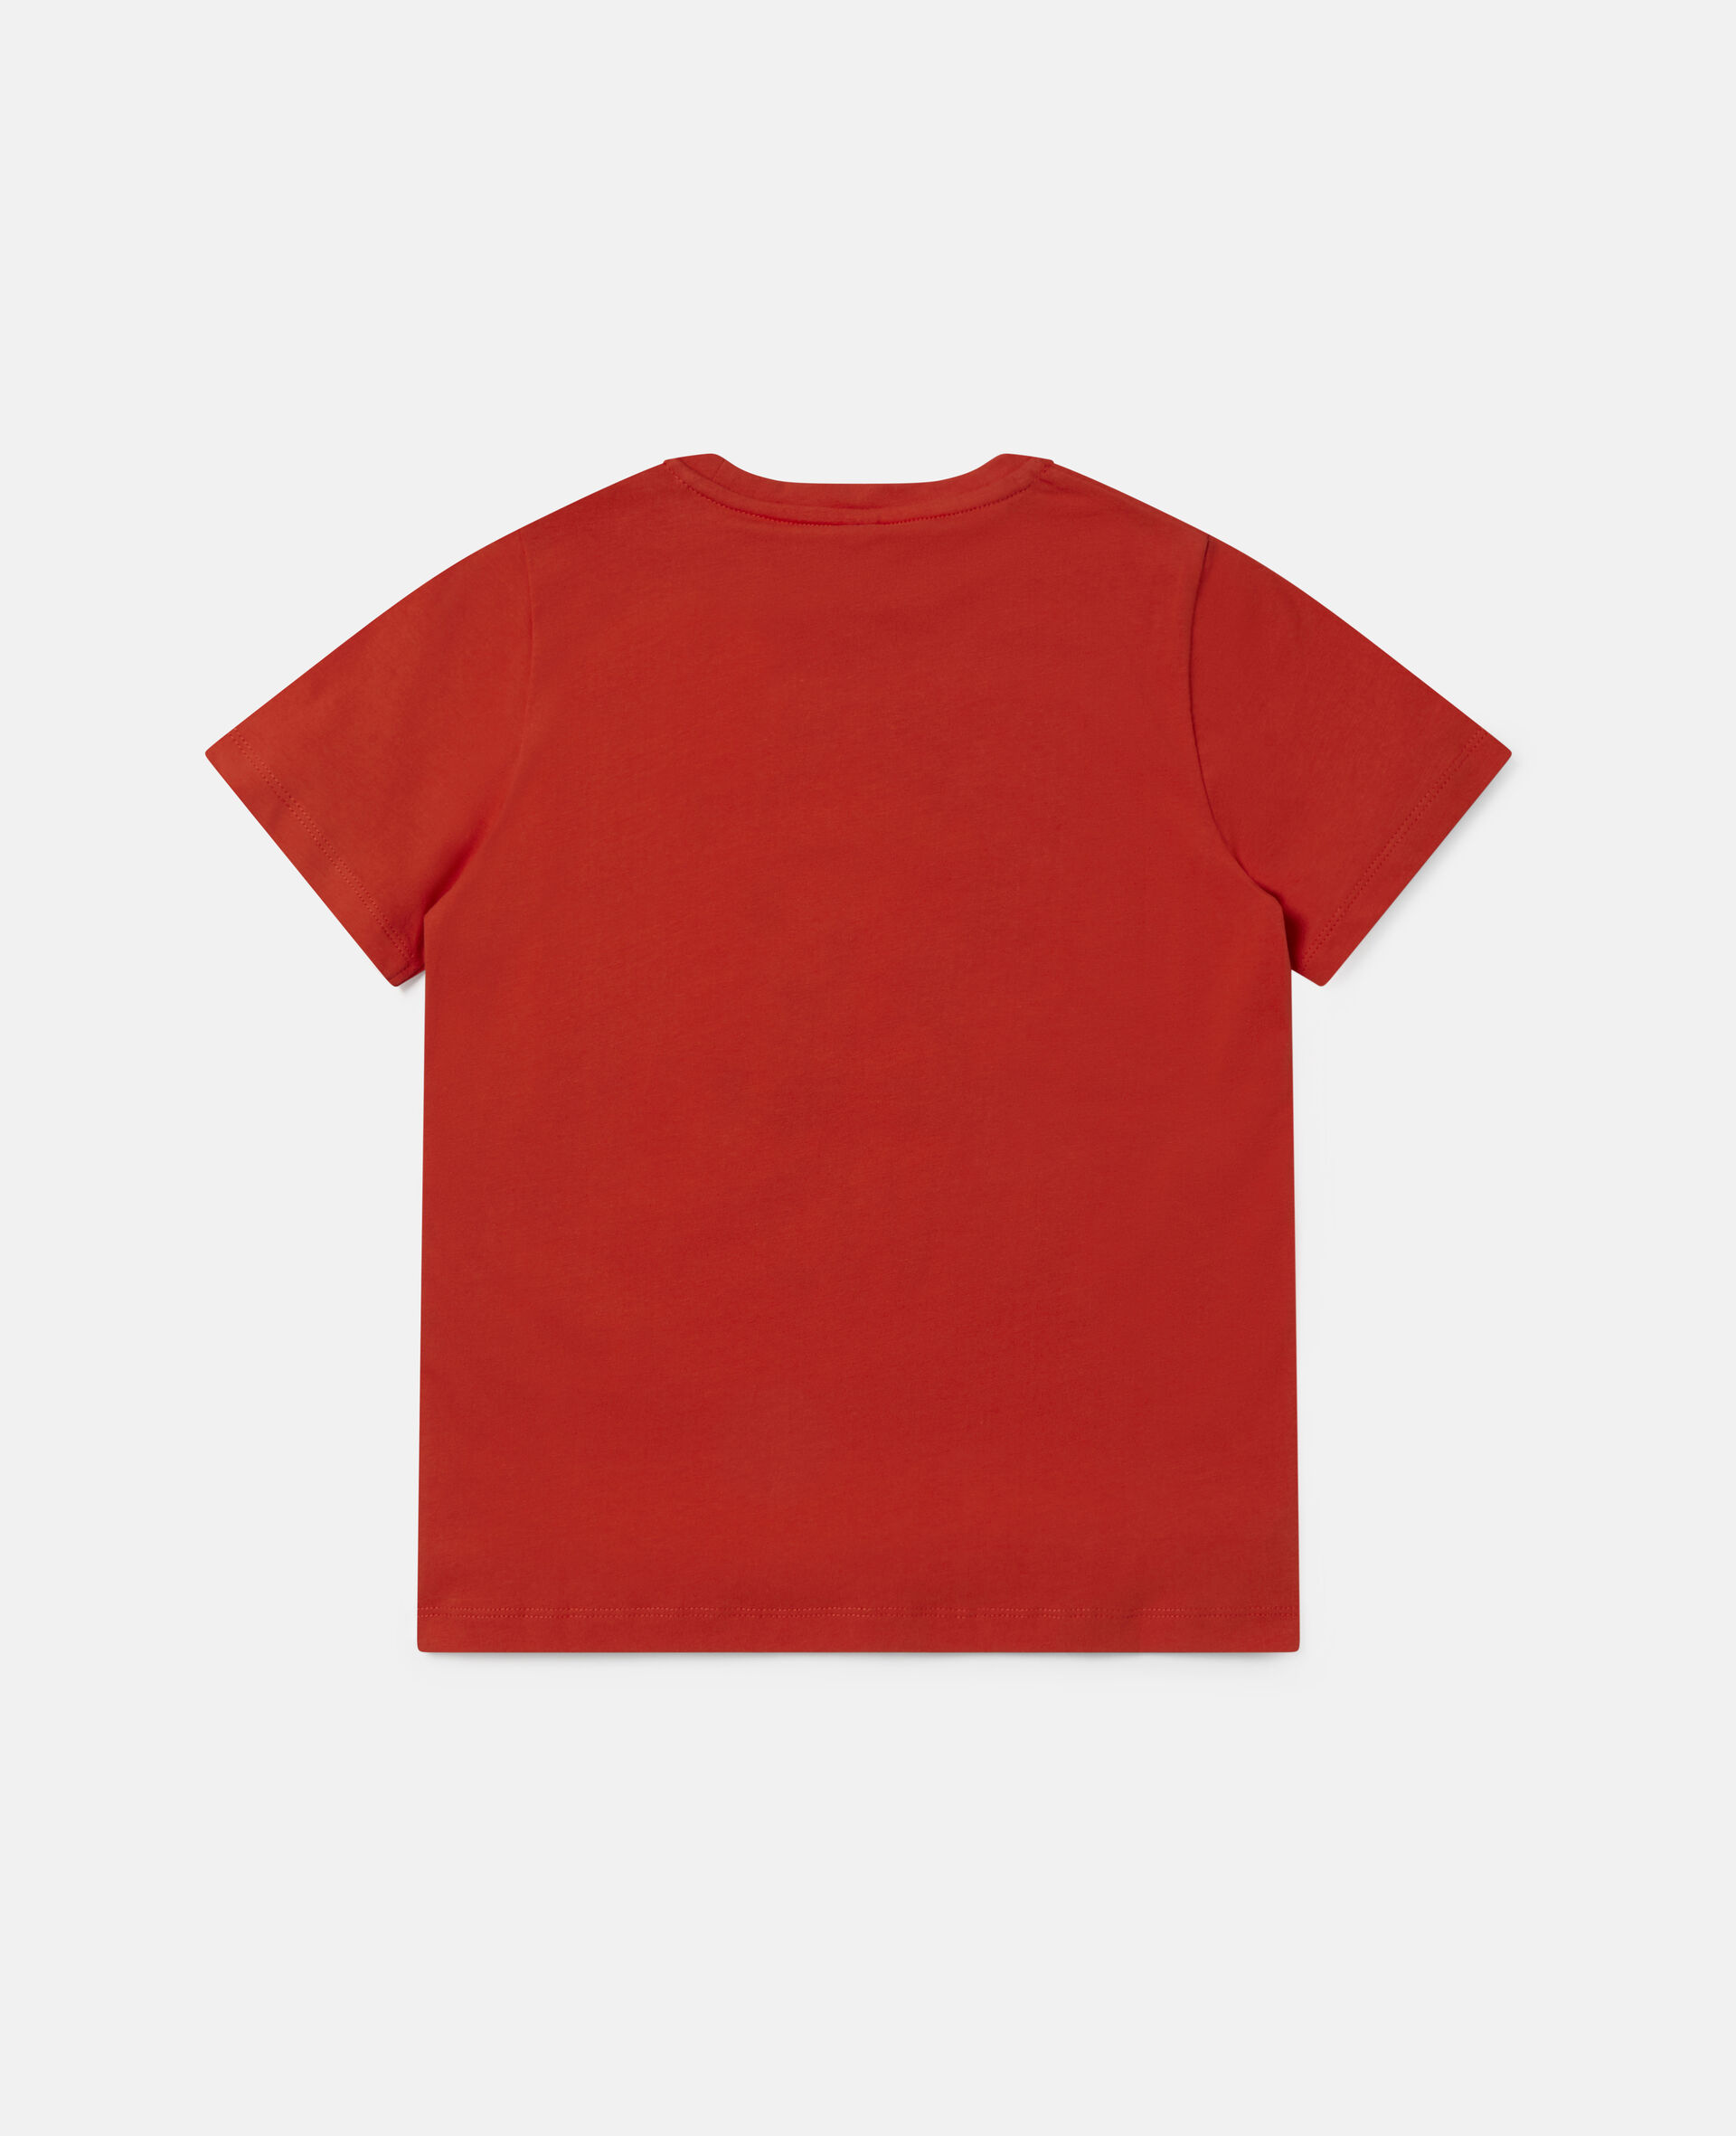 Best Buds' Cotton T-shirt-Red-large image number 3